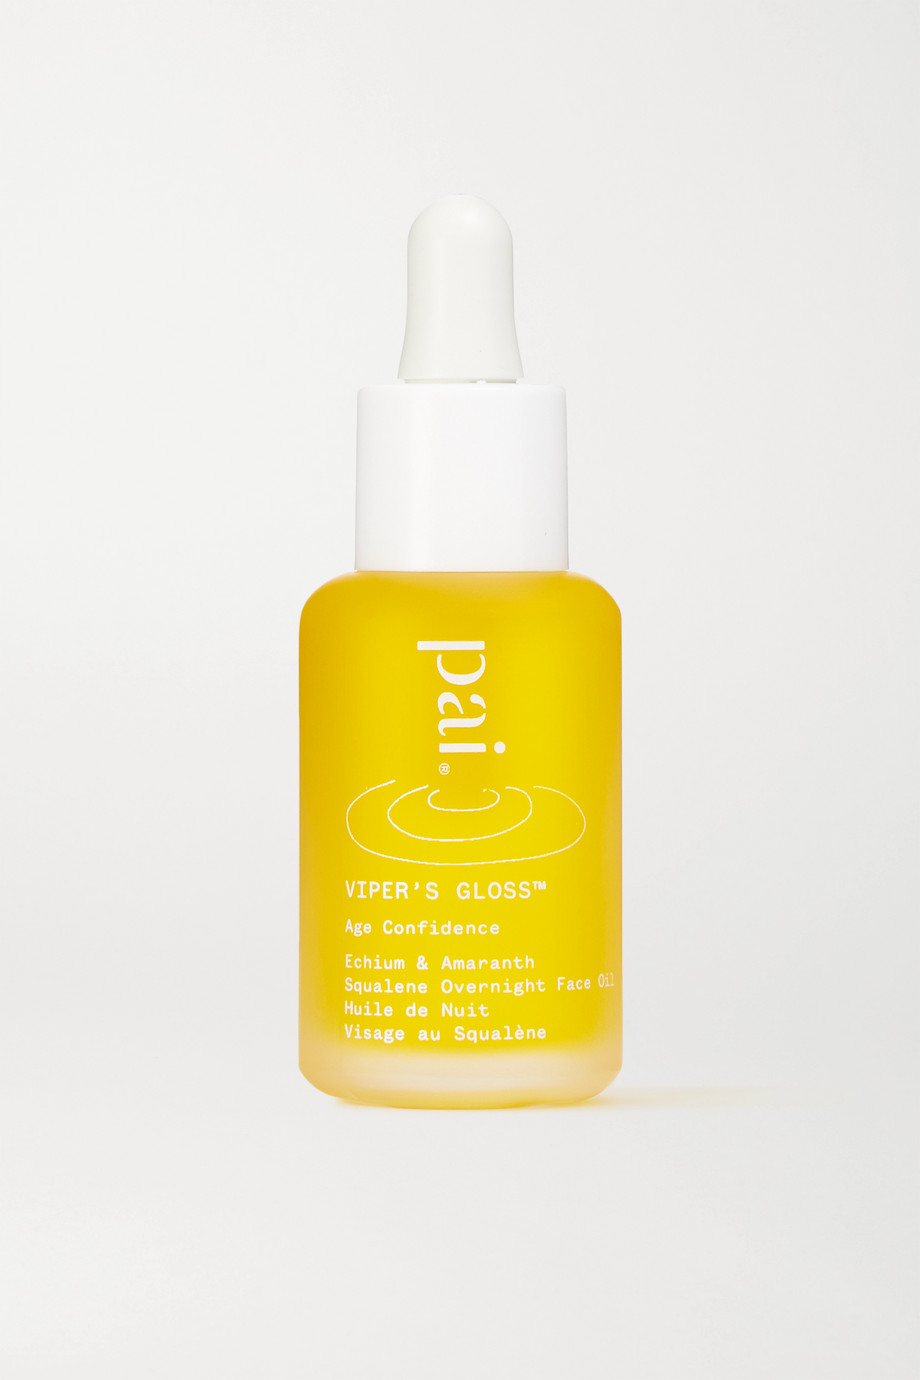 Pai Skincare + NET SUSTAIN Echium & Amaranth Age Confidence Facial Oil, 30ml